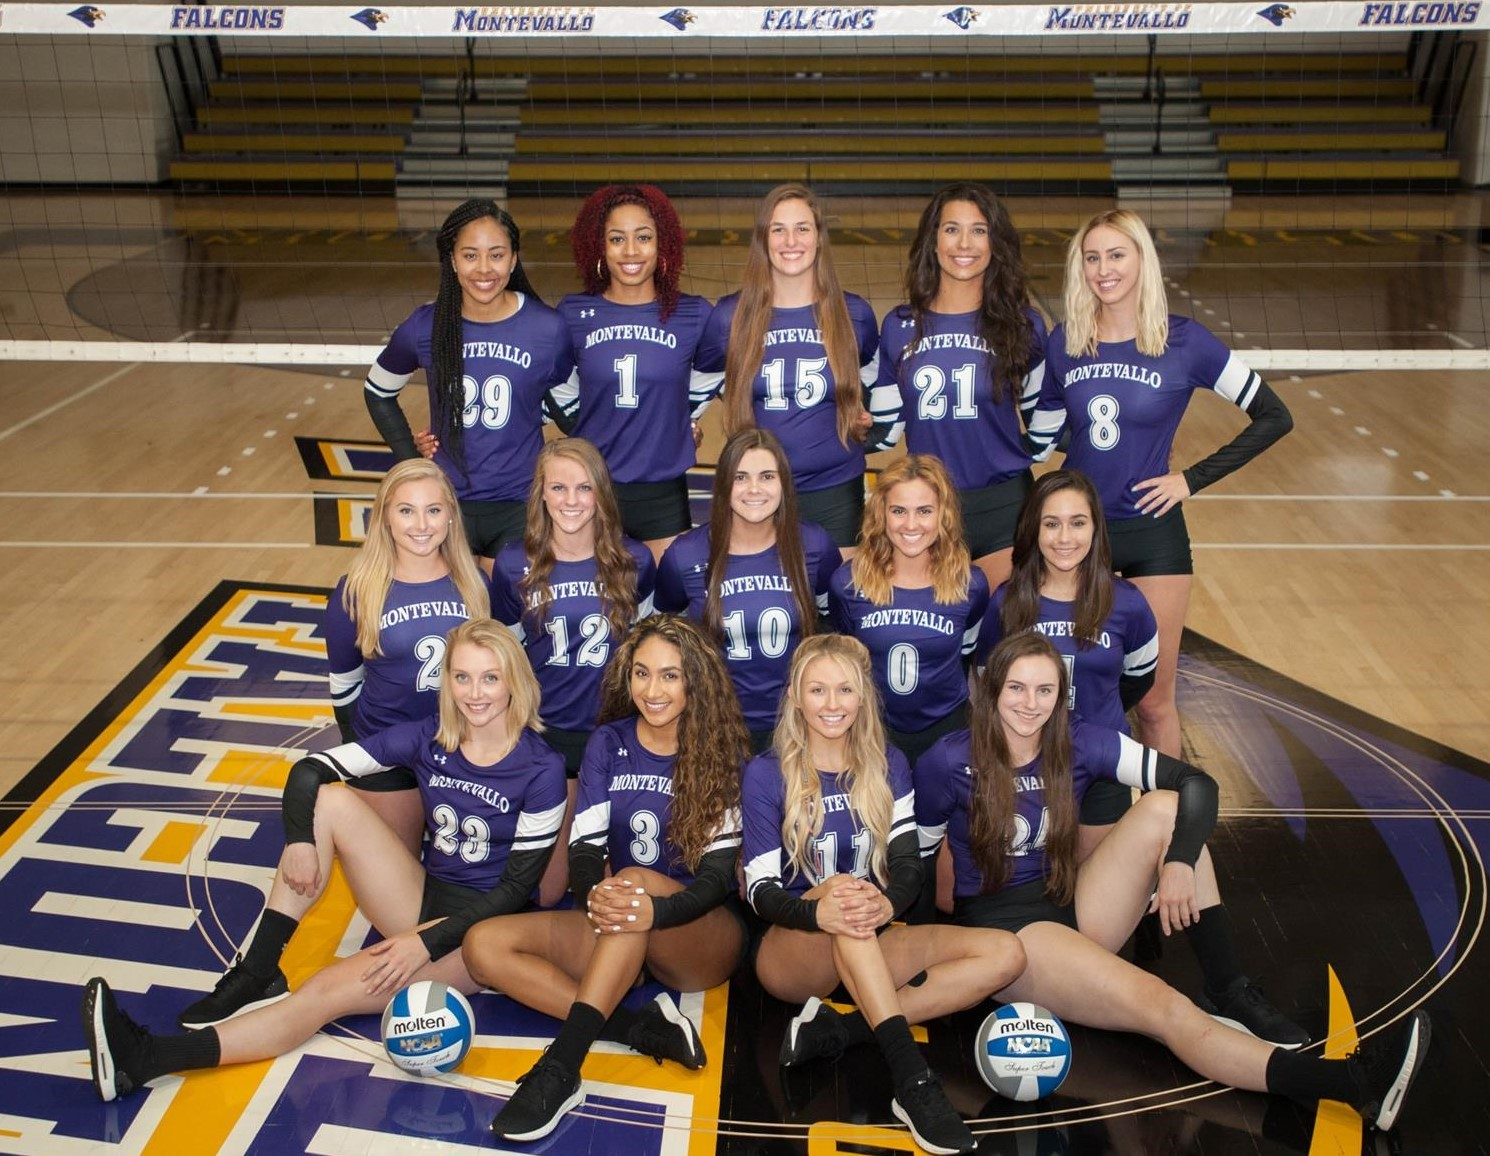 a7b3363319d 2018 Women s Volleyball Roster - University of Montevallo Athletics